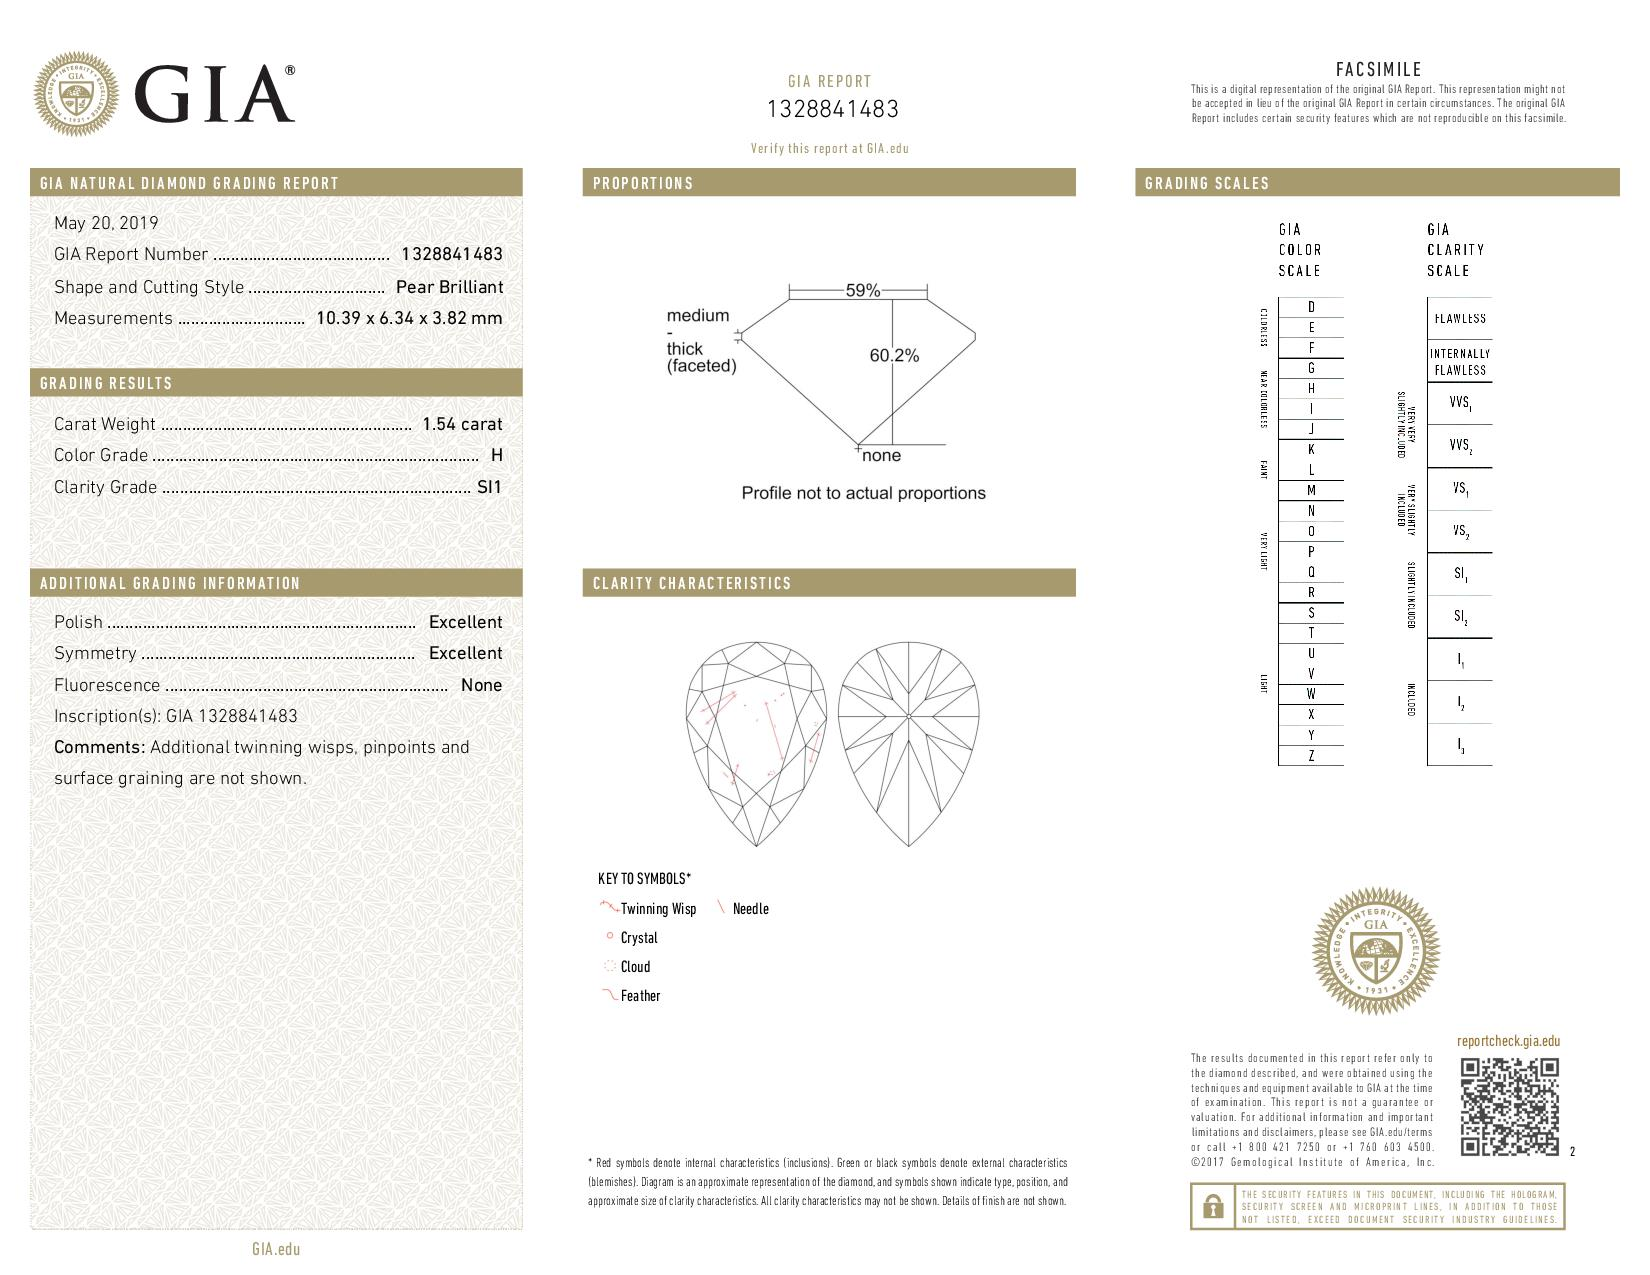 This is a 1.54 carat pear shape, H color, SI1 clarity natural diamond accompanied by a GIA grading report.